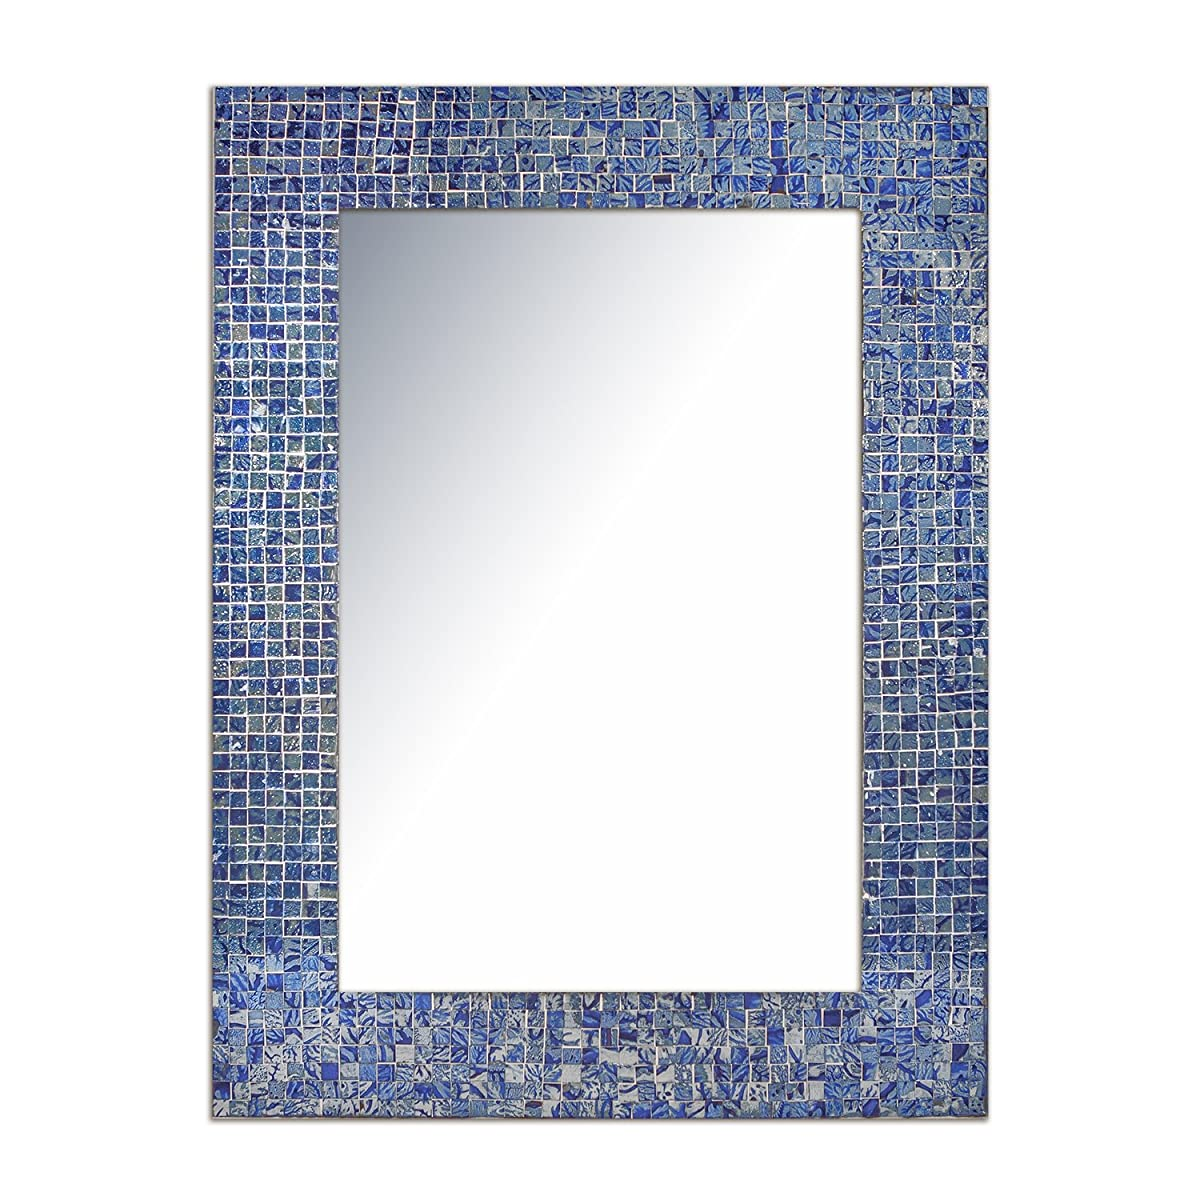 """DecorShore 24""""x18"""" Mosaic Wall Mirror, Accent Mirror, Rectangular Decorative Mirror with Mosaic Glass Tile Frame in Shimmering Sapphire & Silver Hues"""